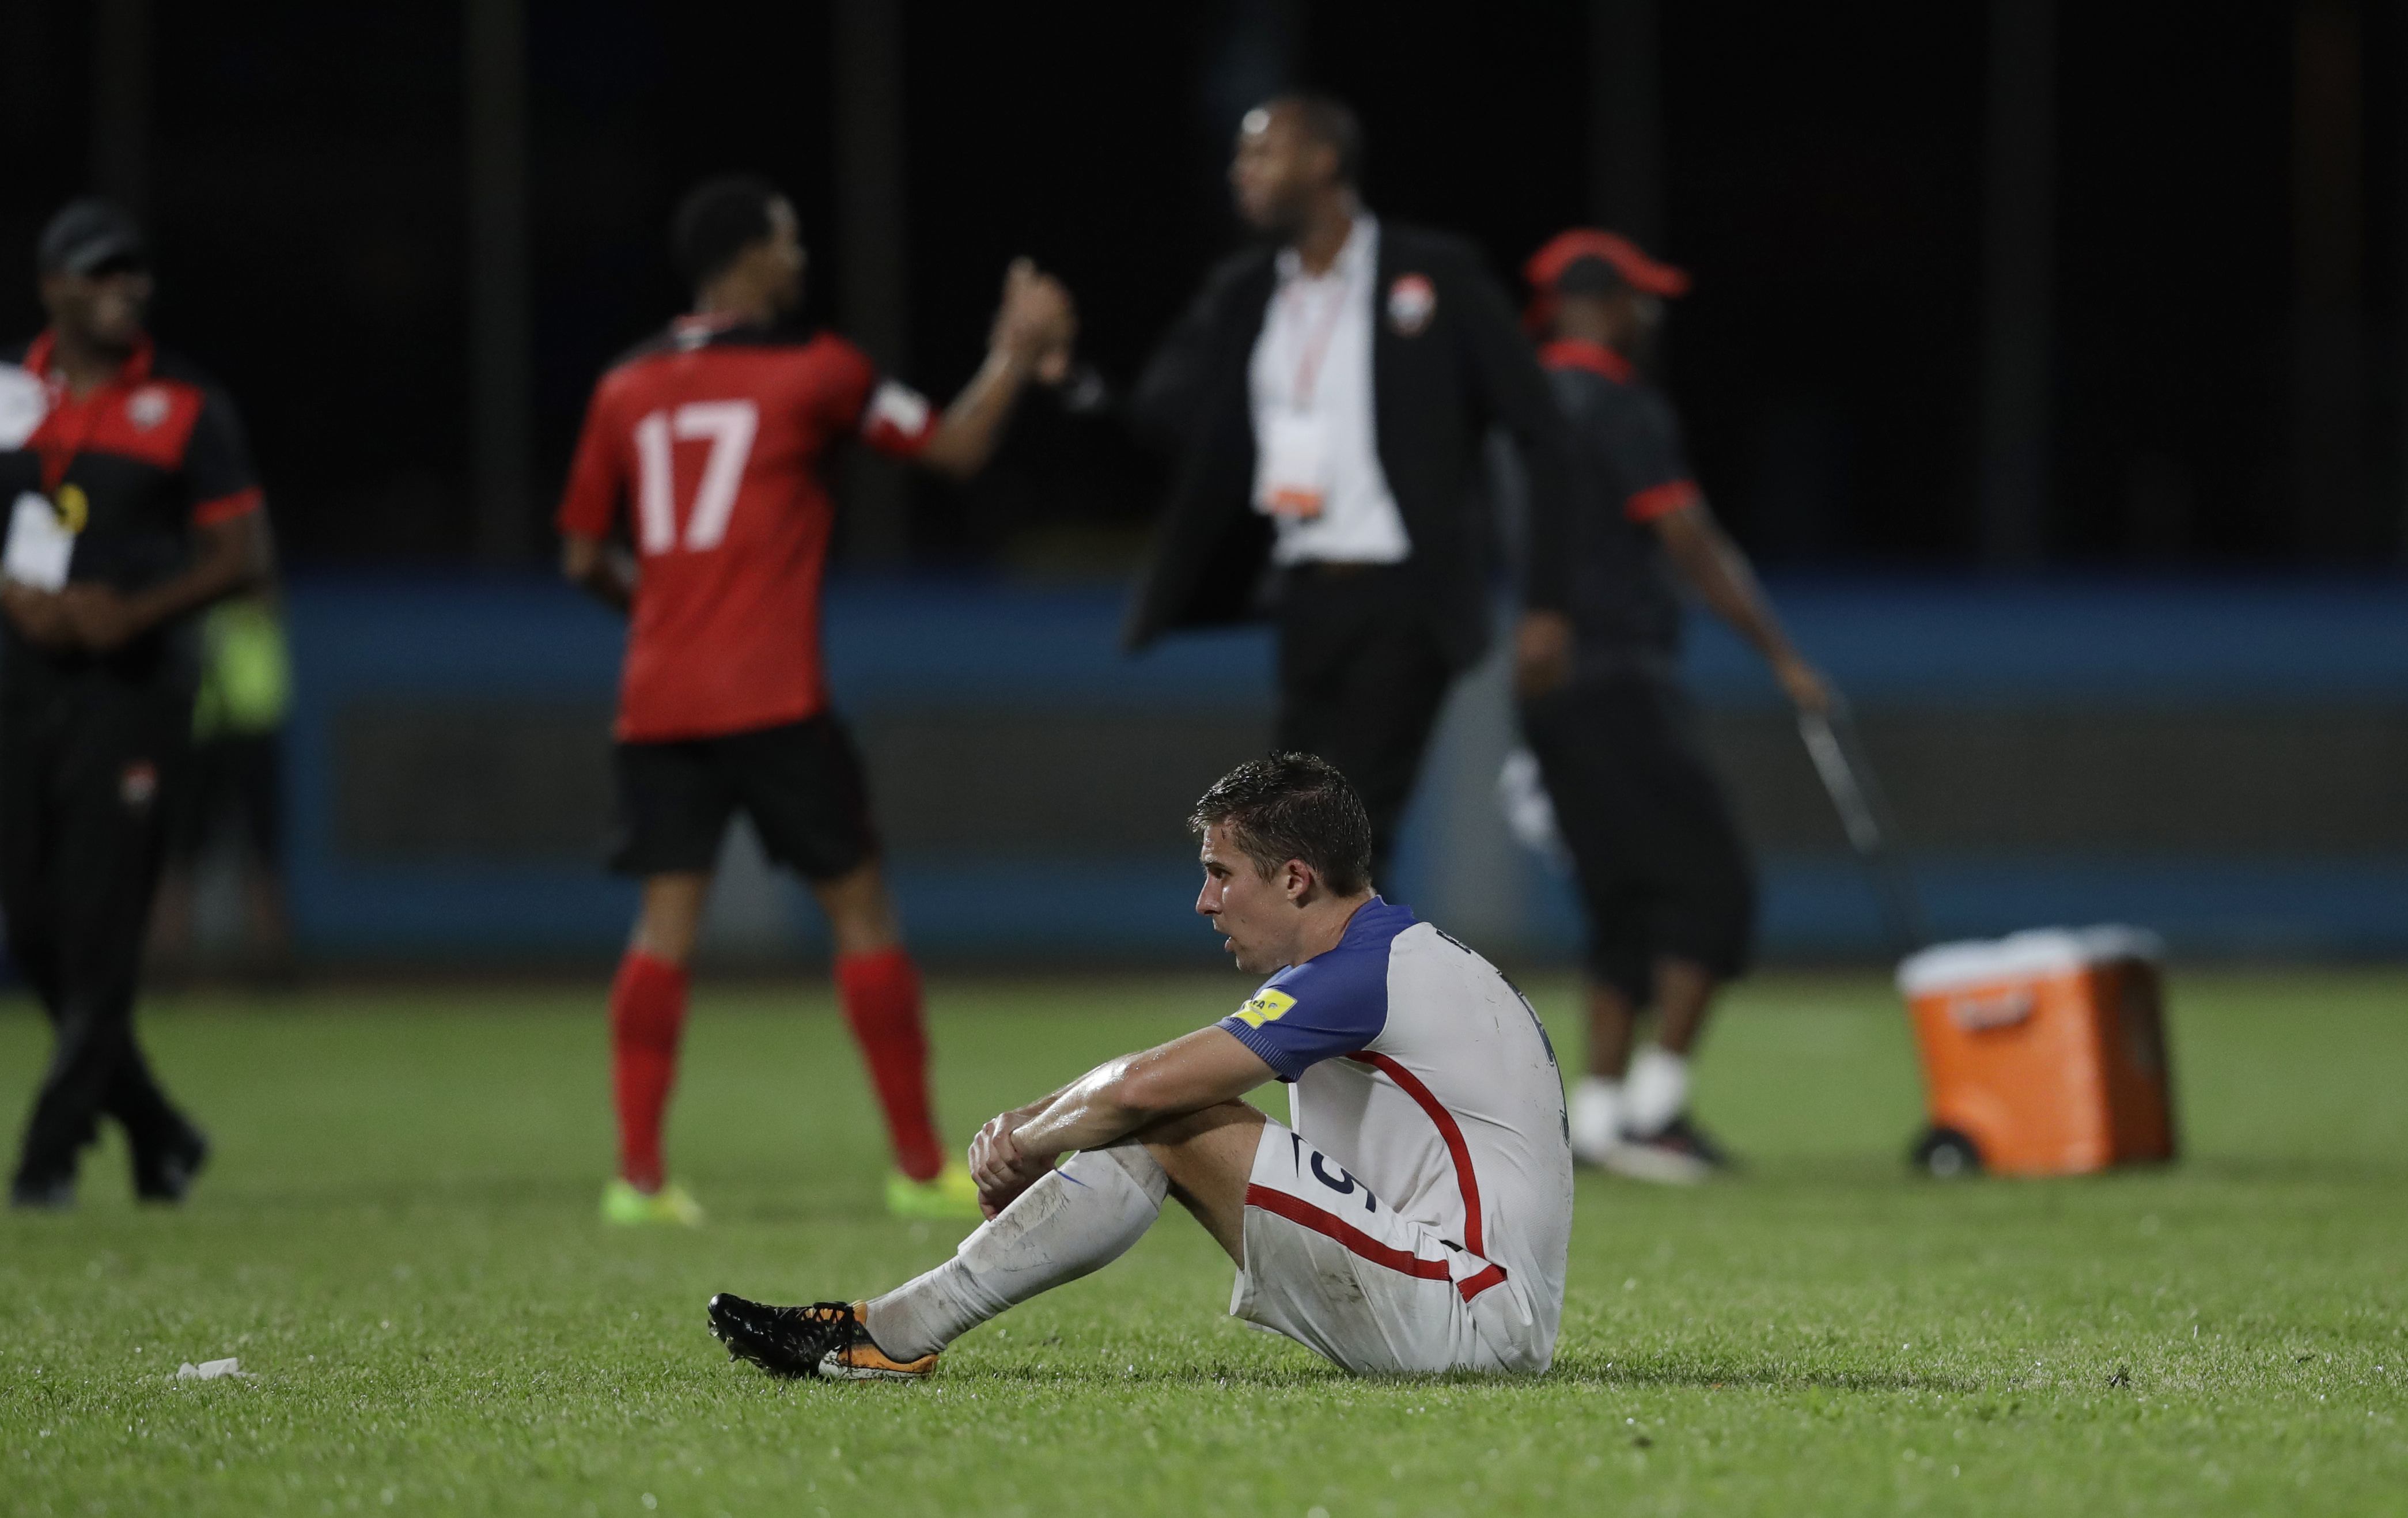 USMNT's Matt Besler squats on the pitch after losing 2-1 against Trinidad and Tobago during a 2018 World Cup qualifying soccer match in Couva, Trinidad, on Oct. 10, 2017.